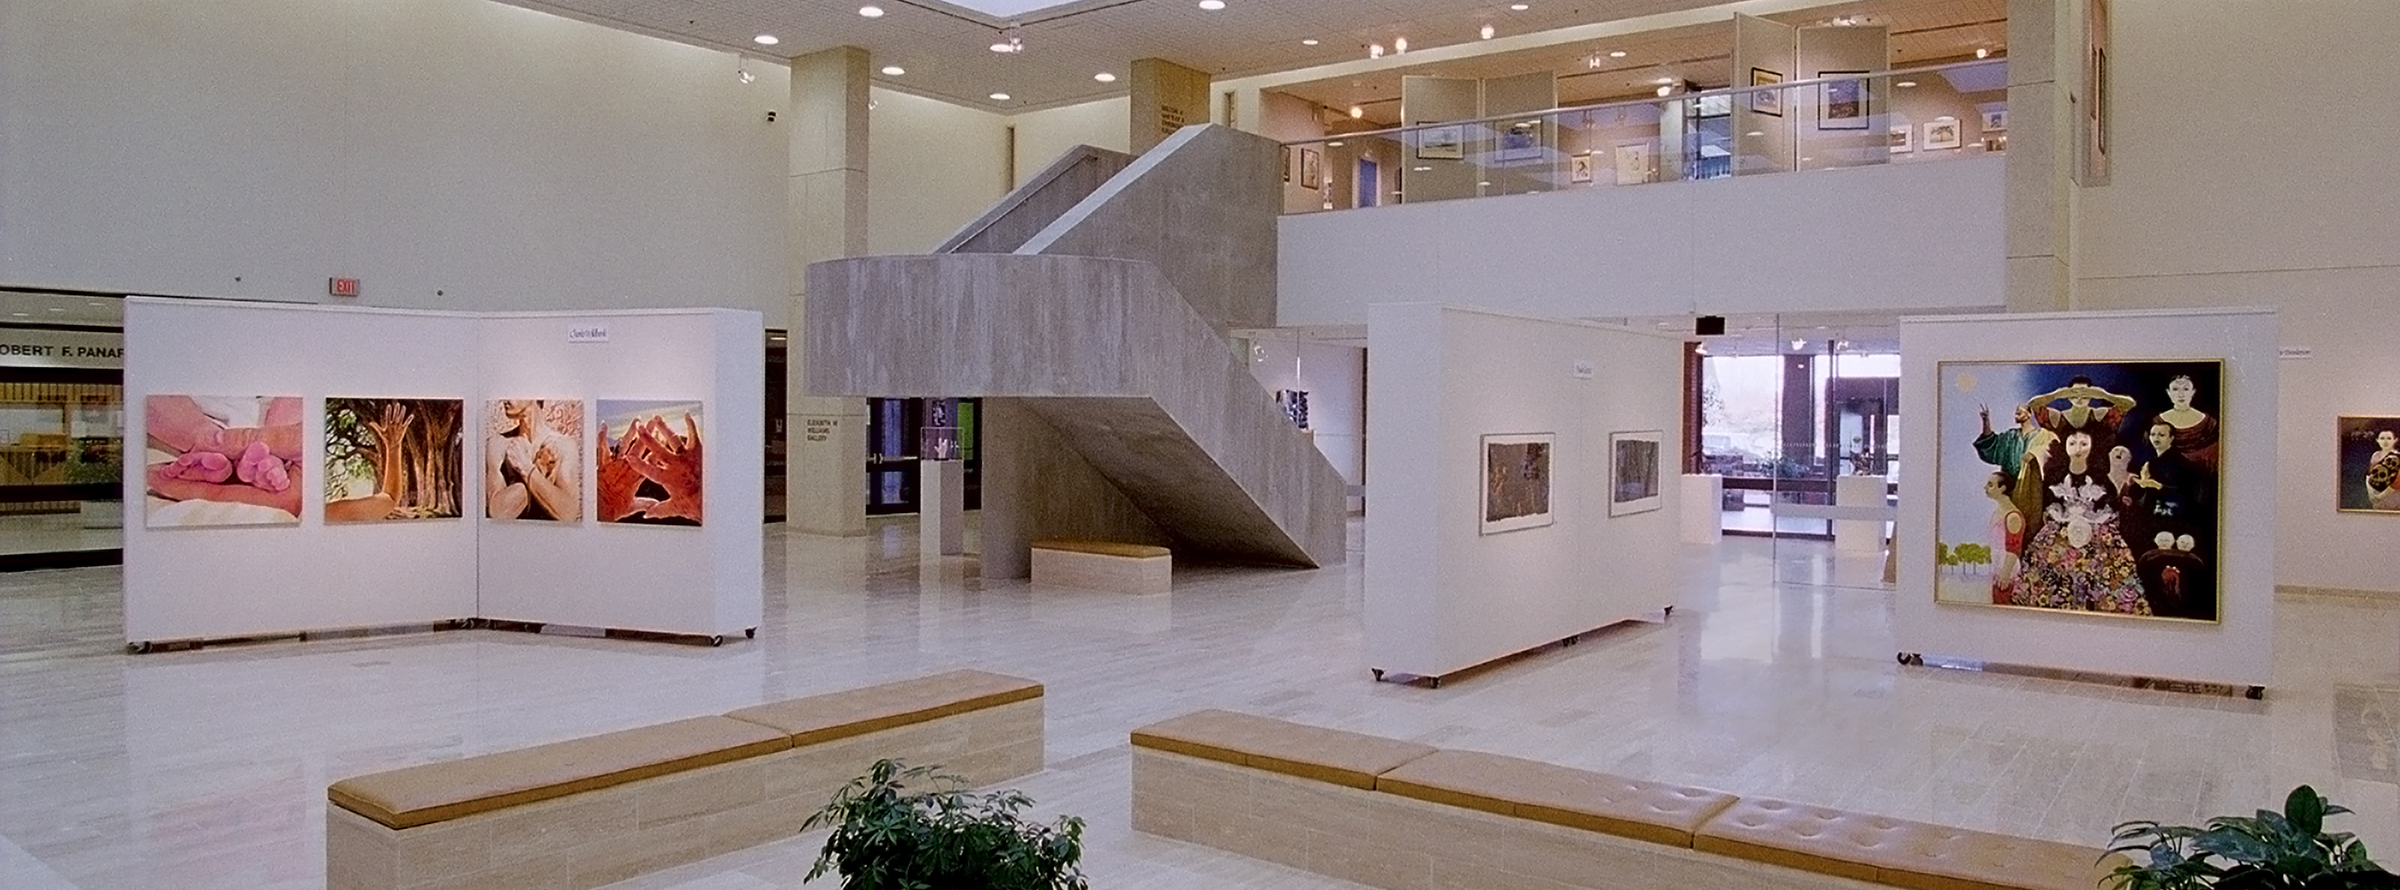 Photo of Dyer Arts space showing exhibits on moveable walls, large cement staircase, lighted ceiling